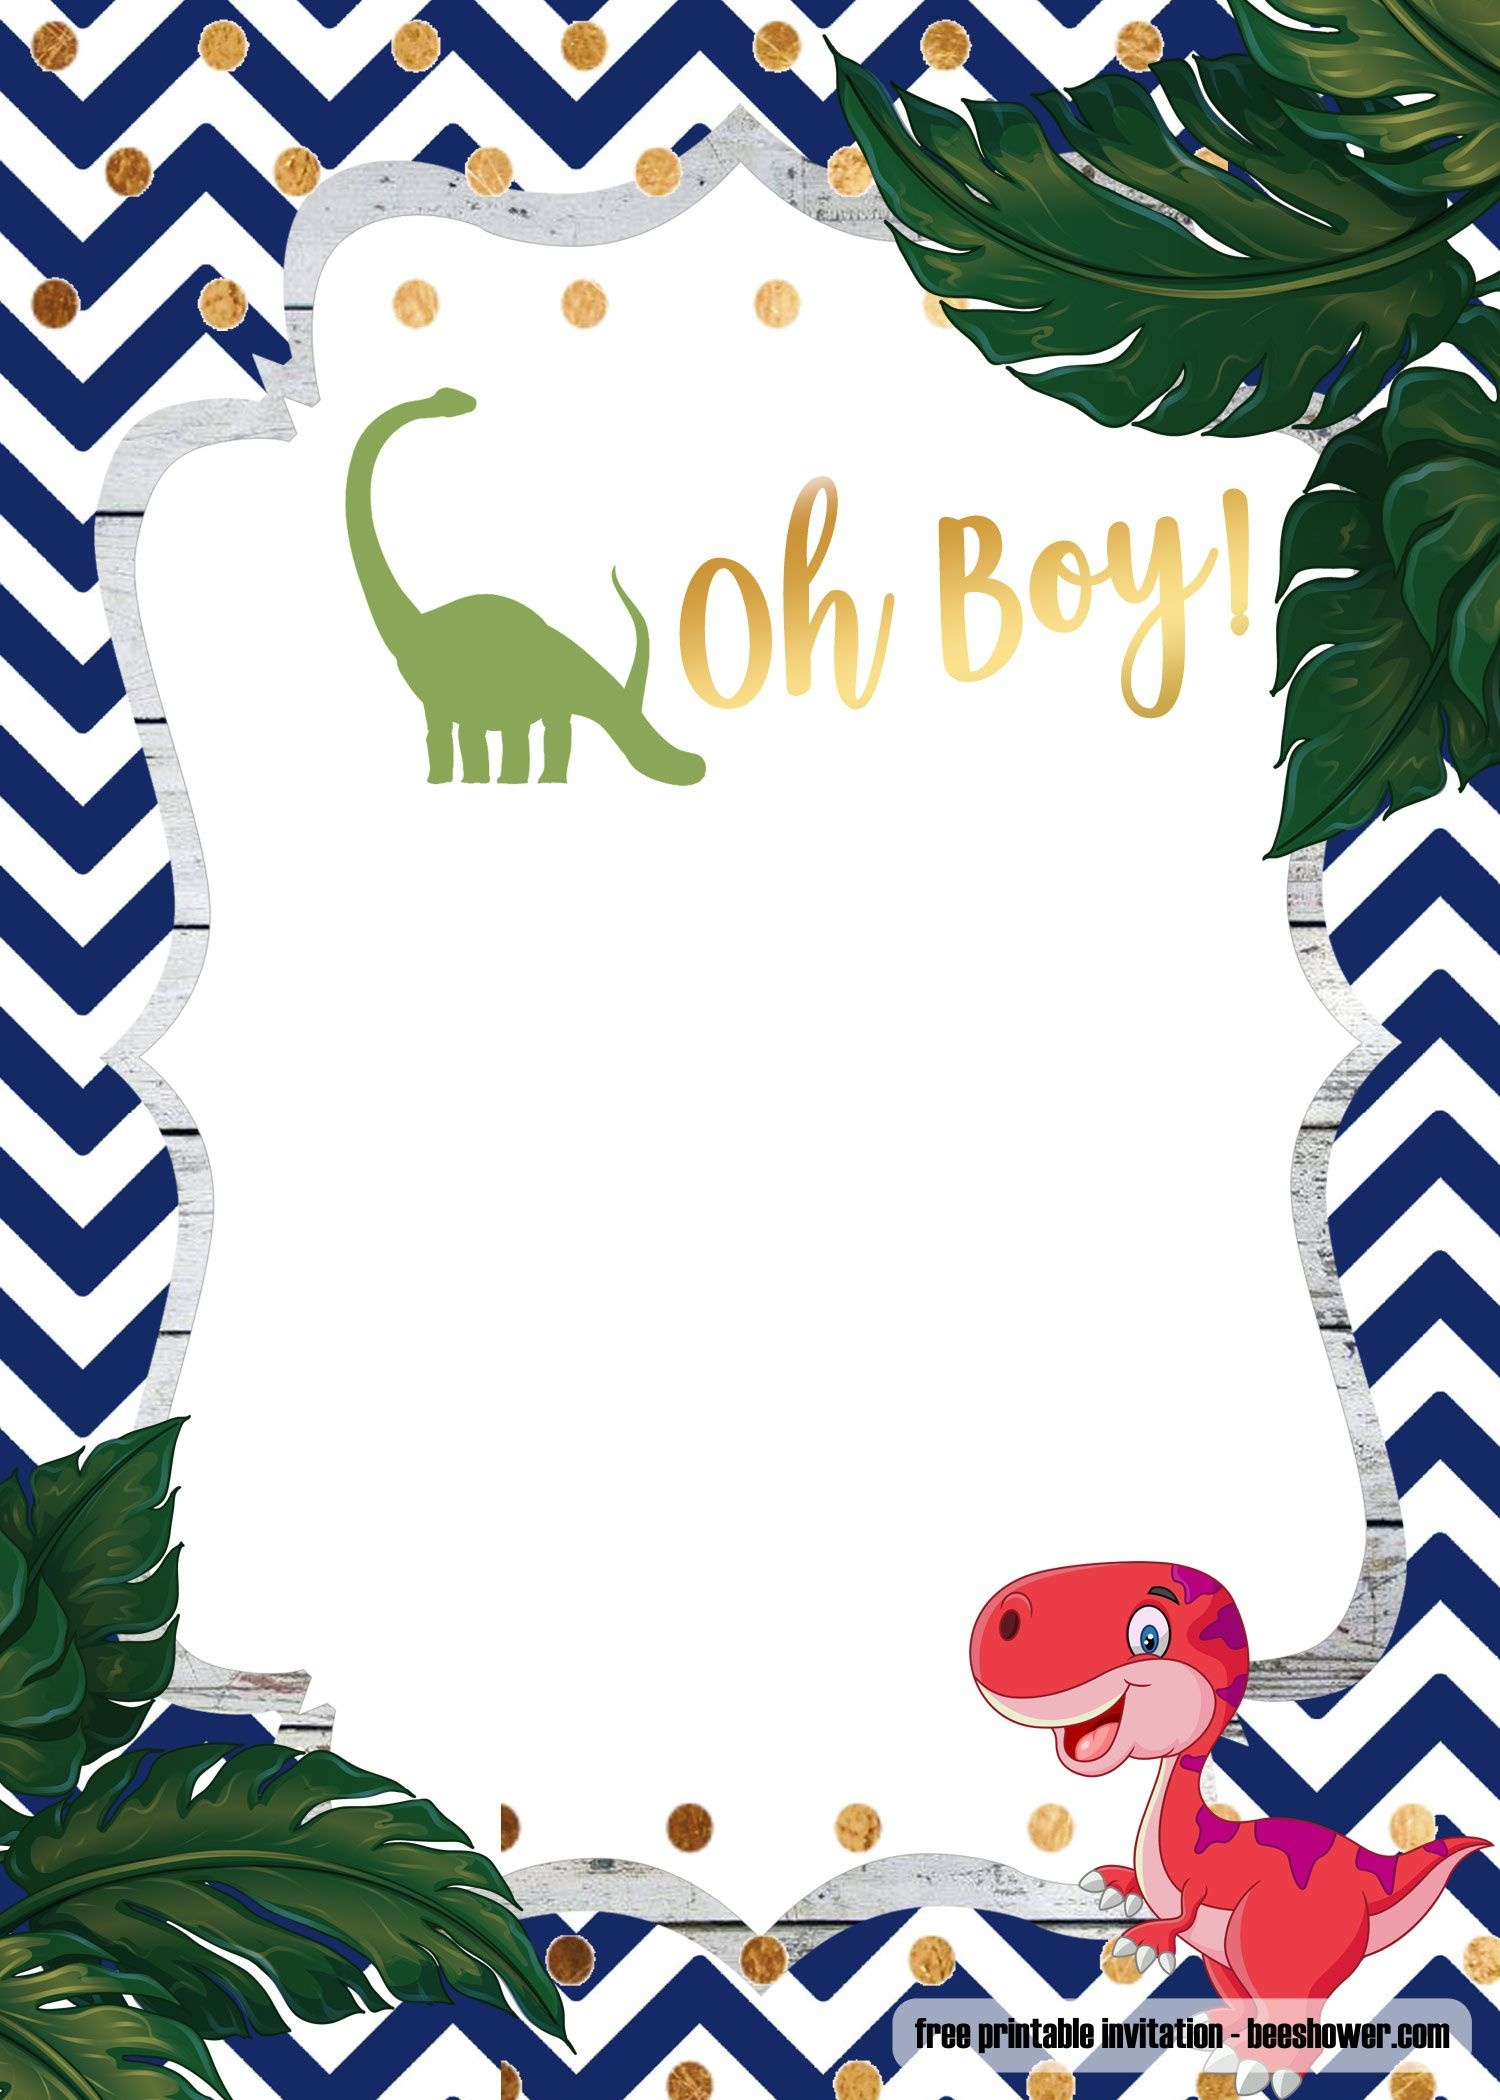 A Dinosaur Template For Your Baby Shower   Baby Shower   Baby - Free Printable Dinosaur Baby Shower Invitations